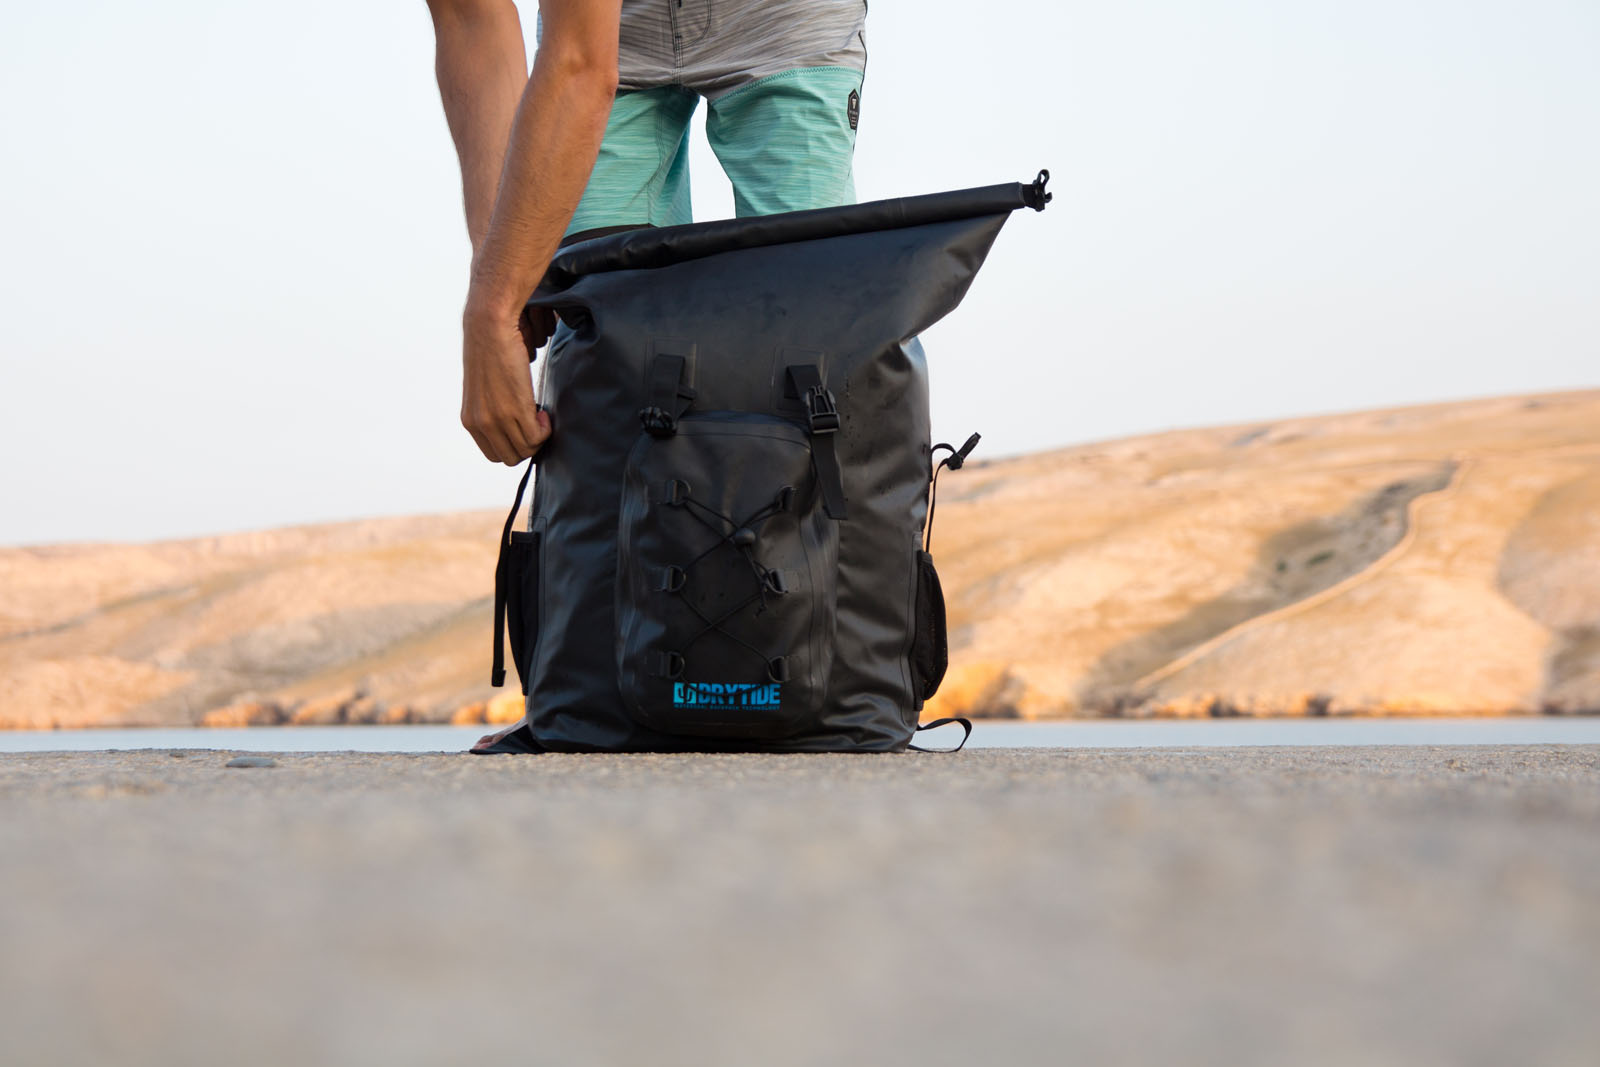 1c00b7eea977 Your best solution is a waterproof backpack. Waterproof backpacks are made  out of special material that is 100% waterproof. Usually fabrics